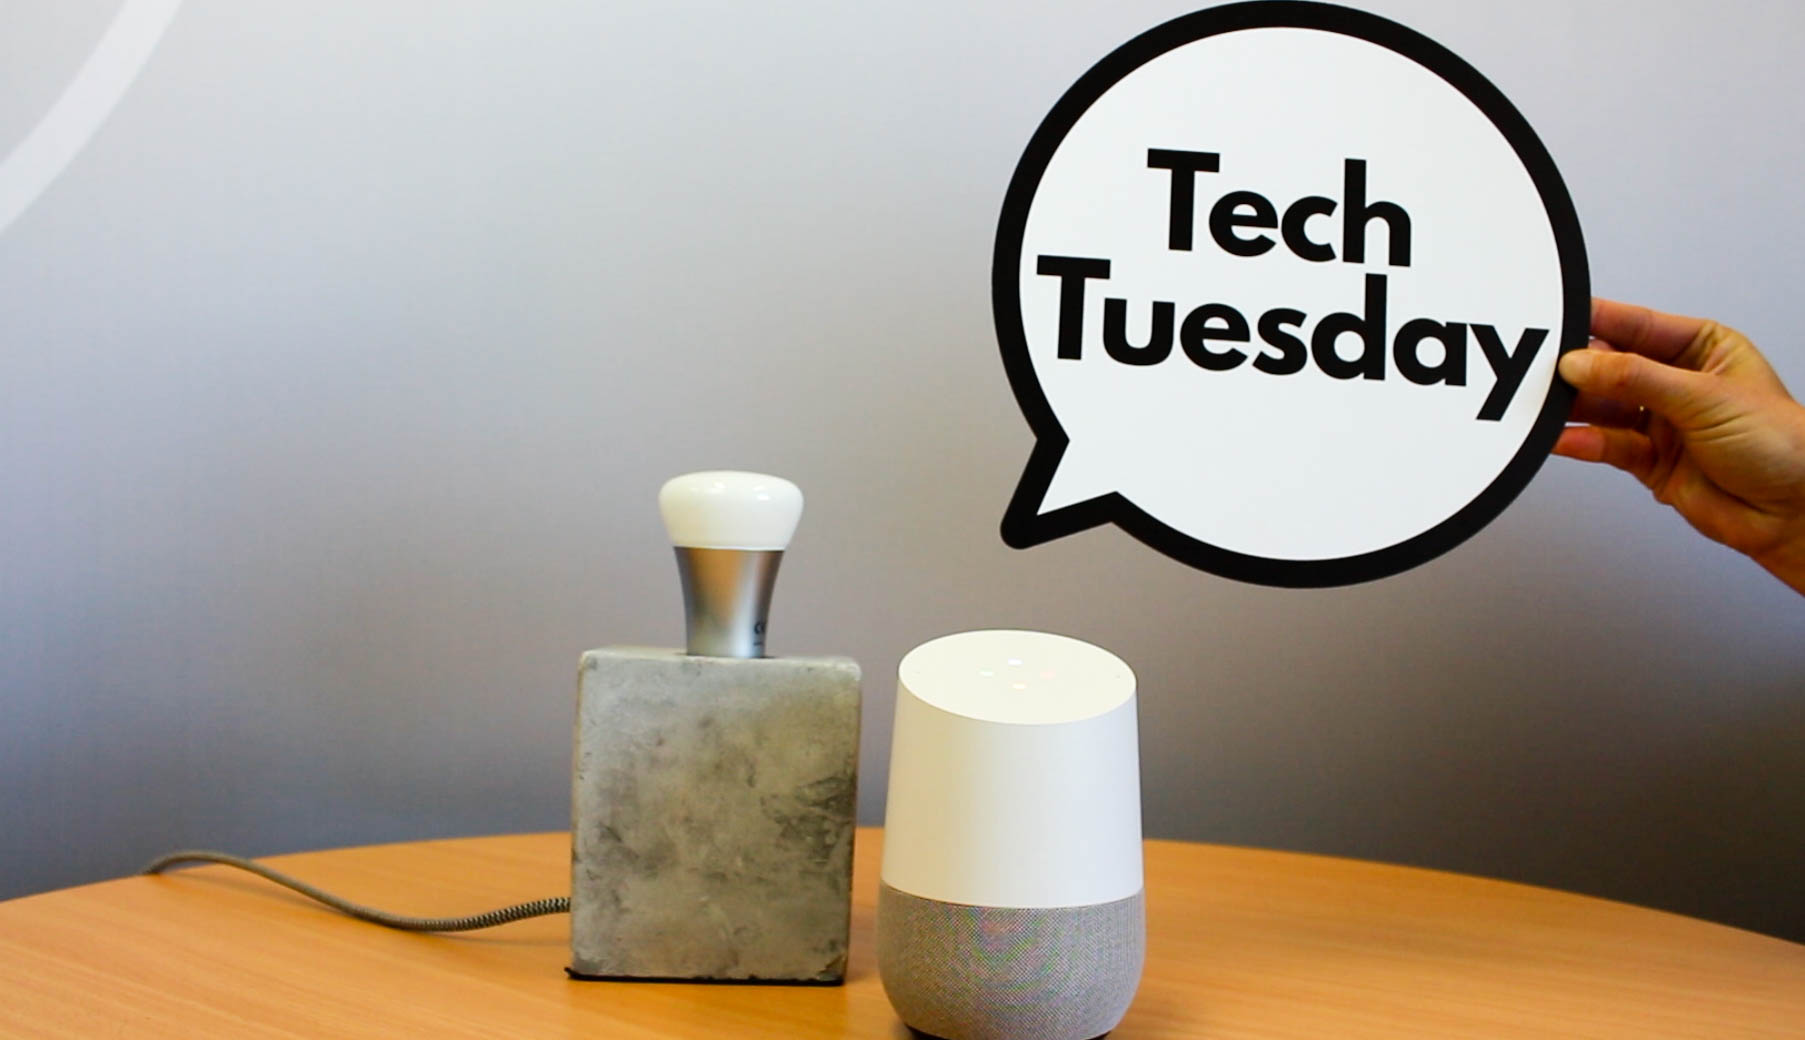 Google Home next to lamp with someone holding a speech bubble that reads Tech Tuesday